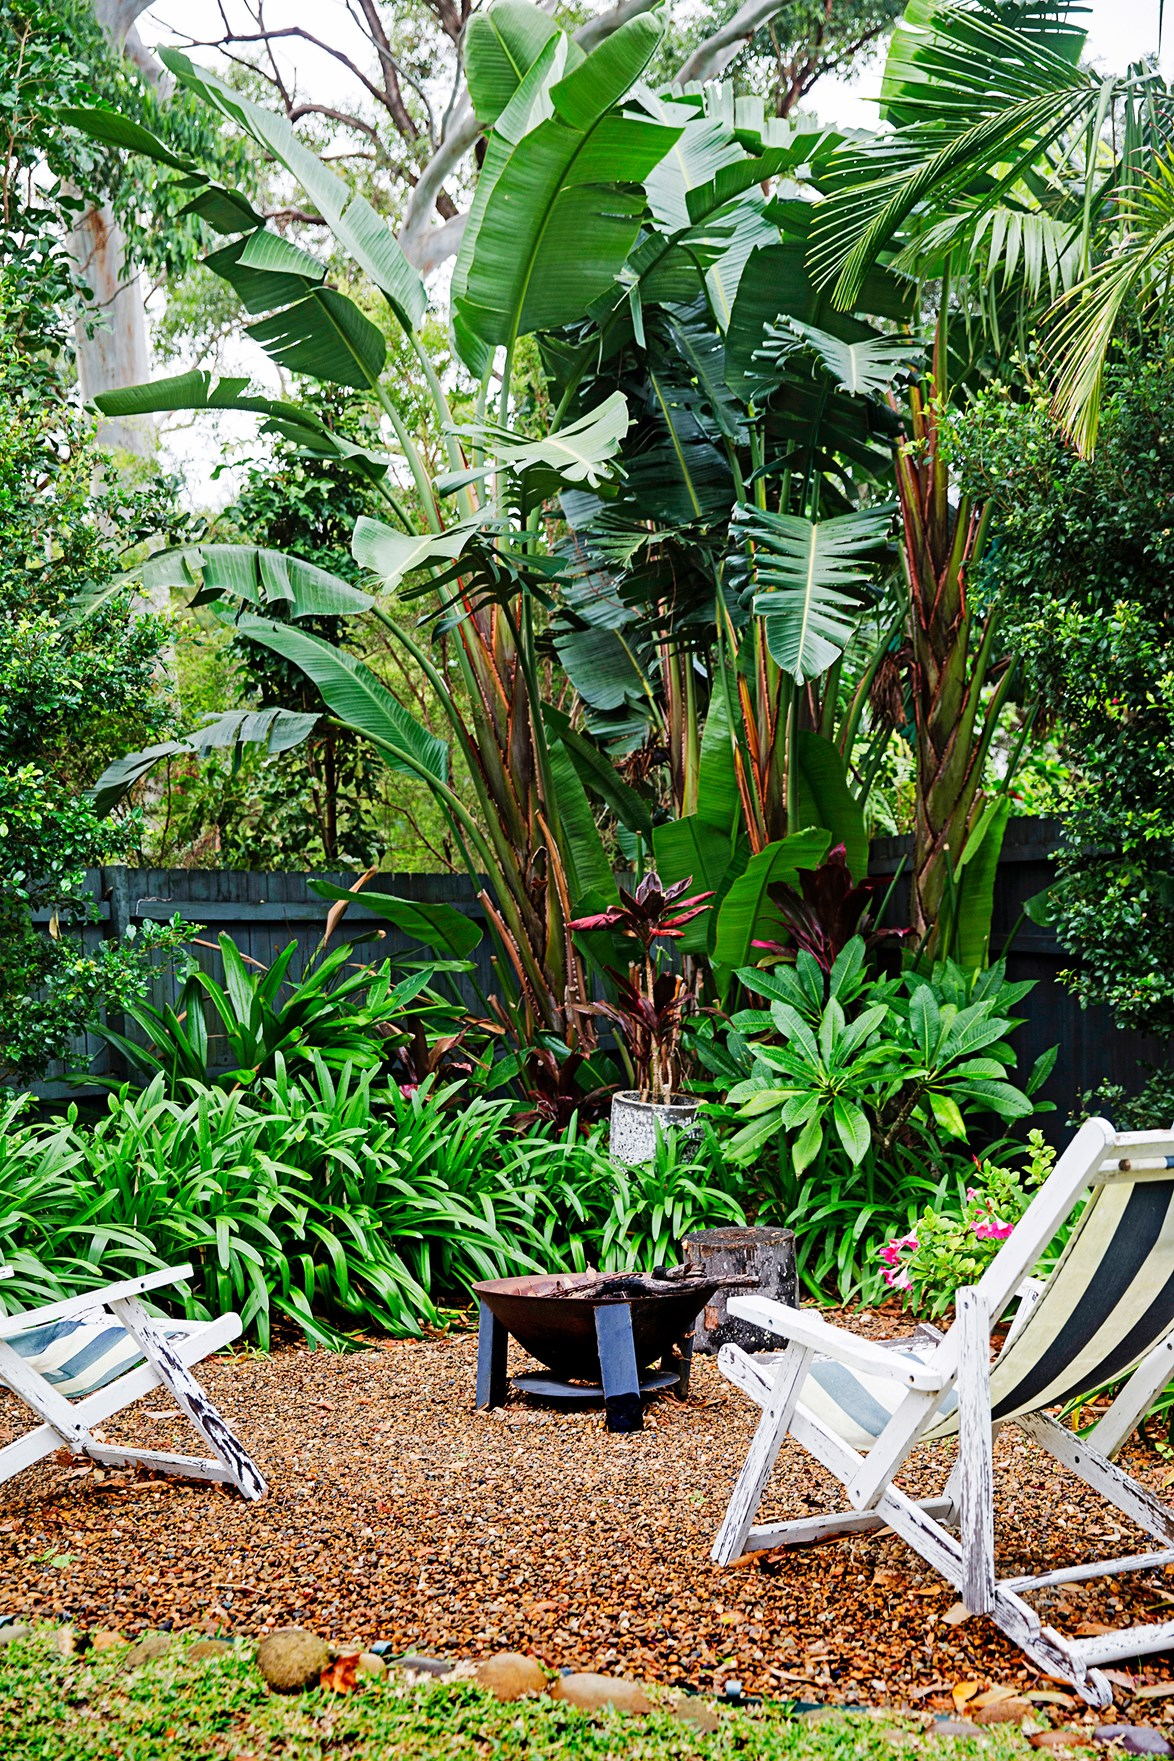 "<p>**TROPICAL GARDEN**<p> <P>Experience those 'away on vacation' vibes every day by creating a [luxurious tropical escape](https://www.homestolove.com.au/tropical-garden-melbourne-7183|target=""_blank"") in your own backyard. A combination of [large leafy plants](https://www.homestolove.com.au/large-indoor-plants-6637